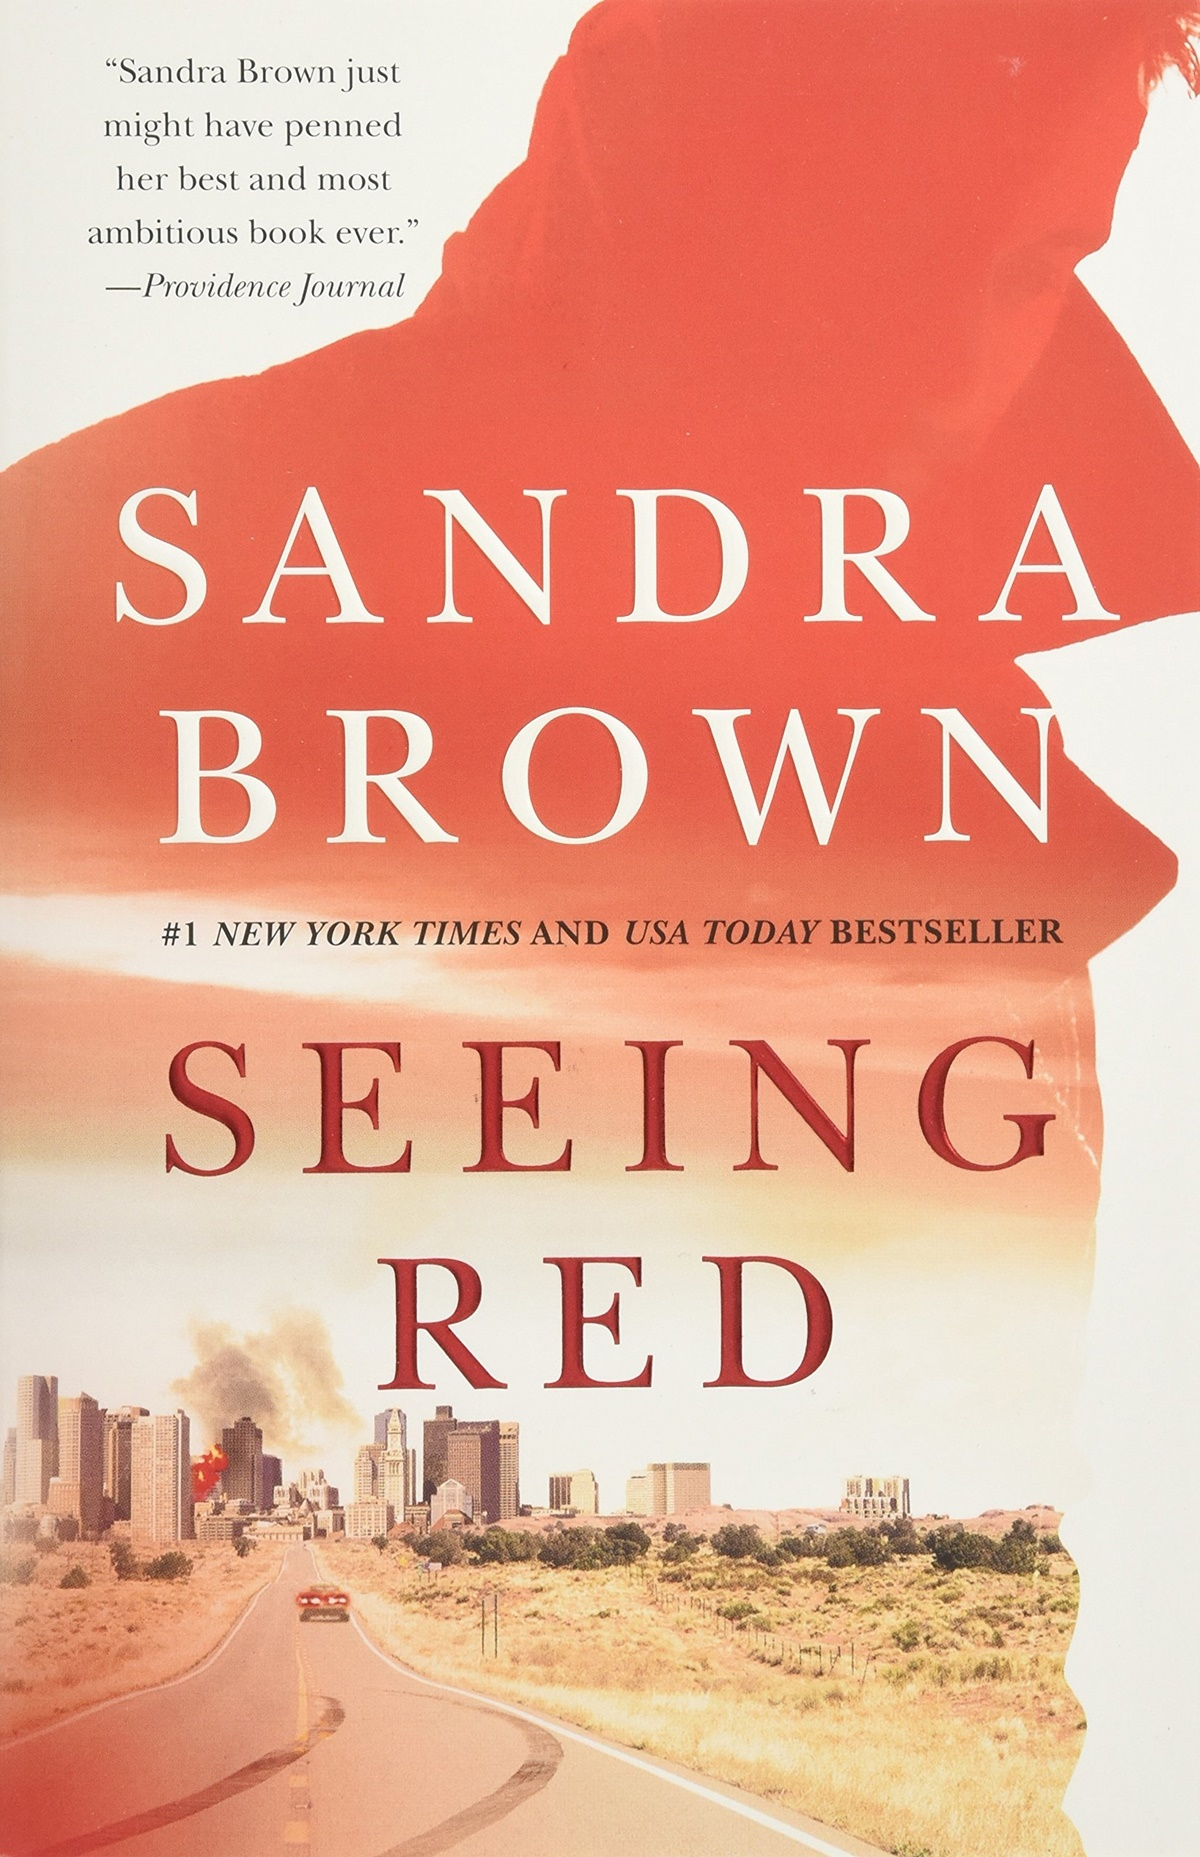 Sandra Brown Books, the cover of Seeing Red by Sandra Brown, books